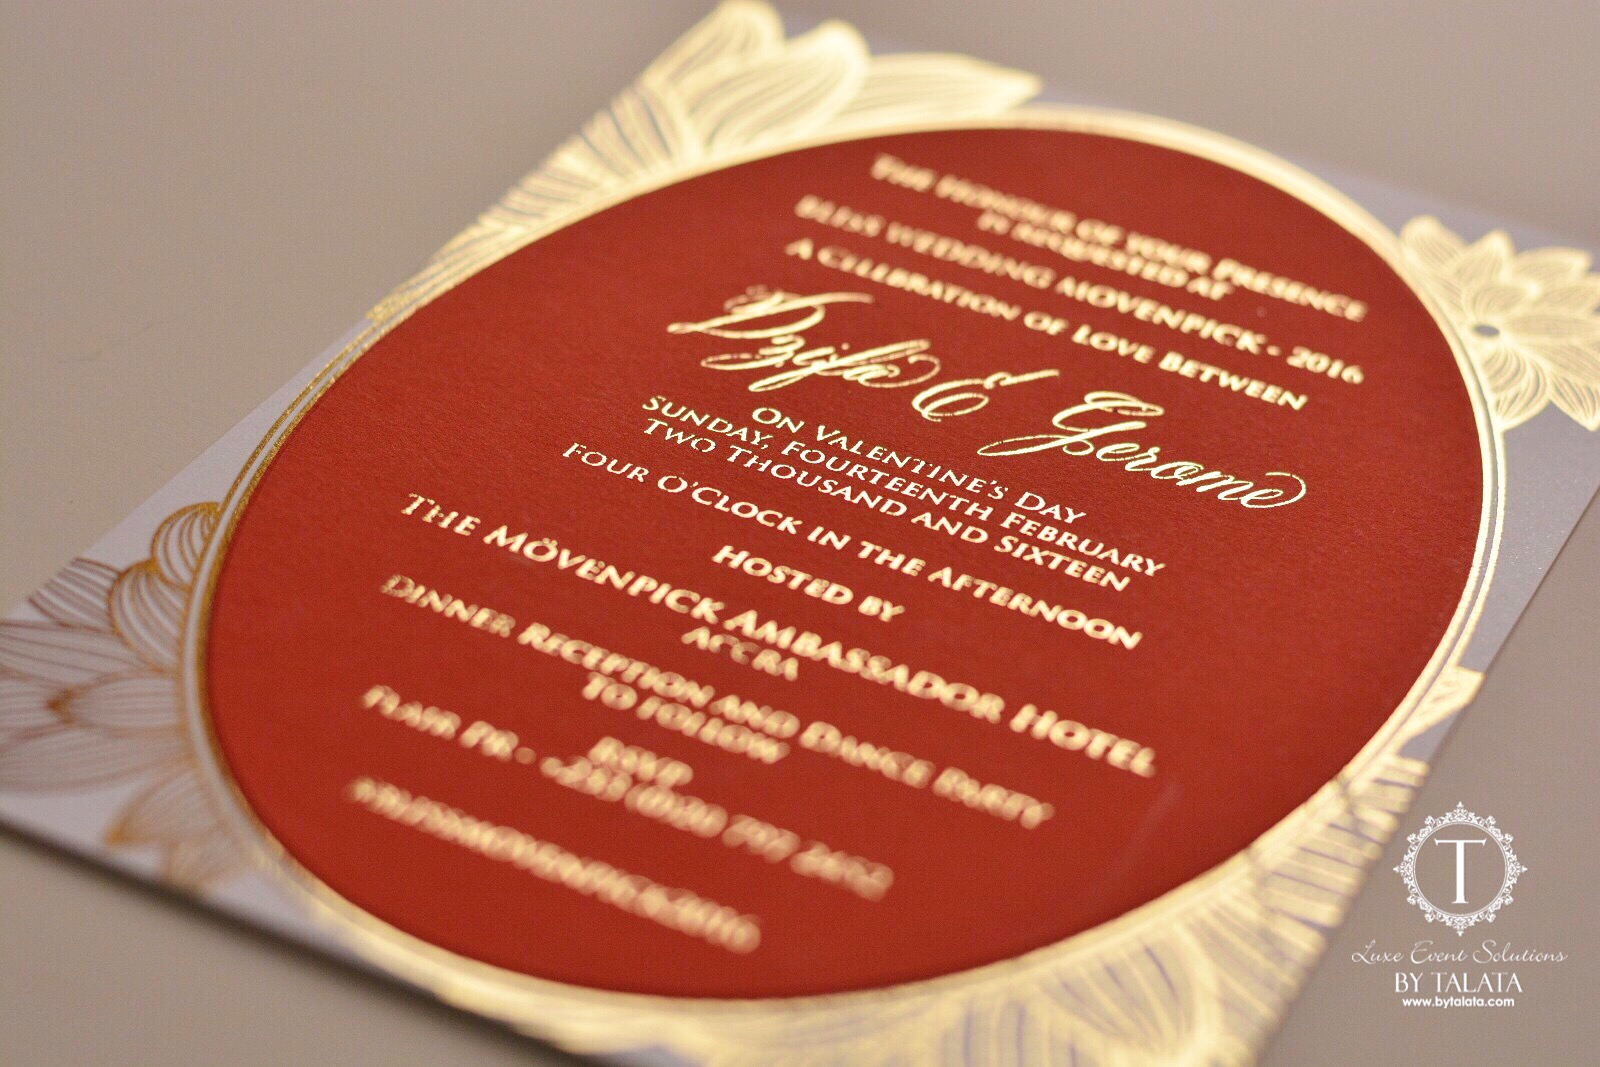 Wedding Invitations, Special Events Invitations in Ghana, Africa